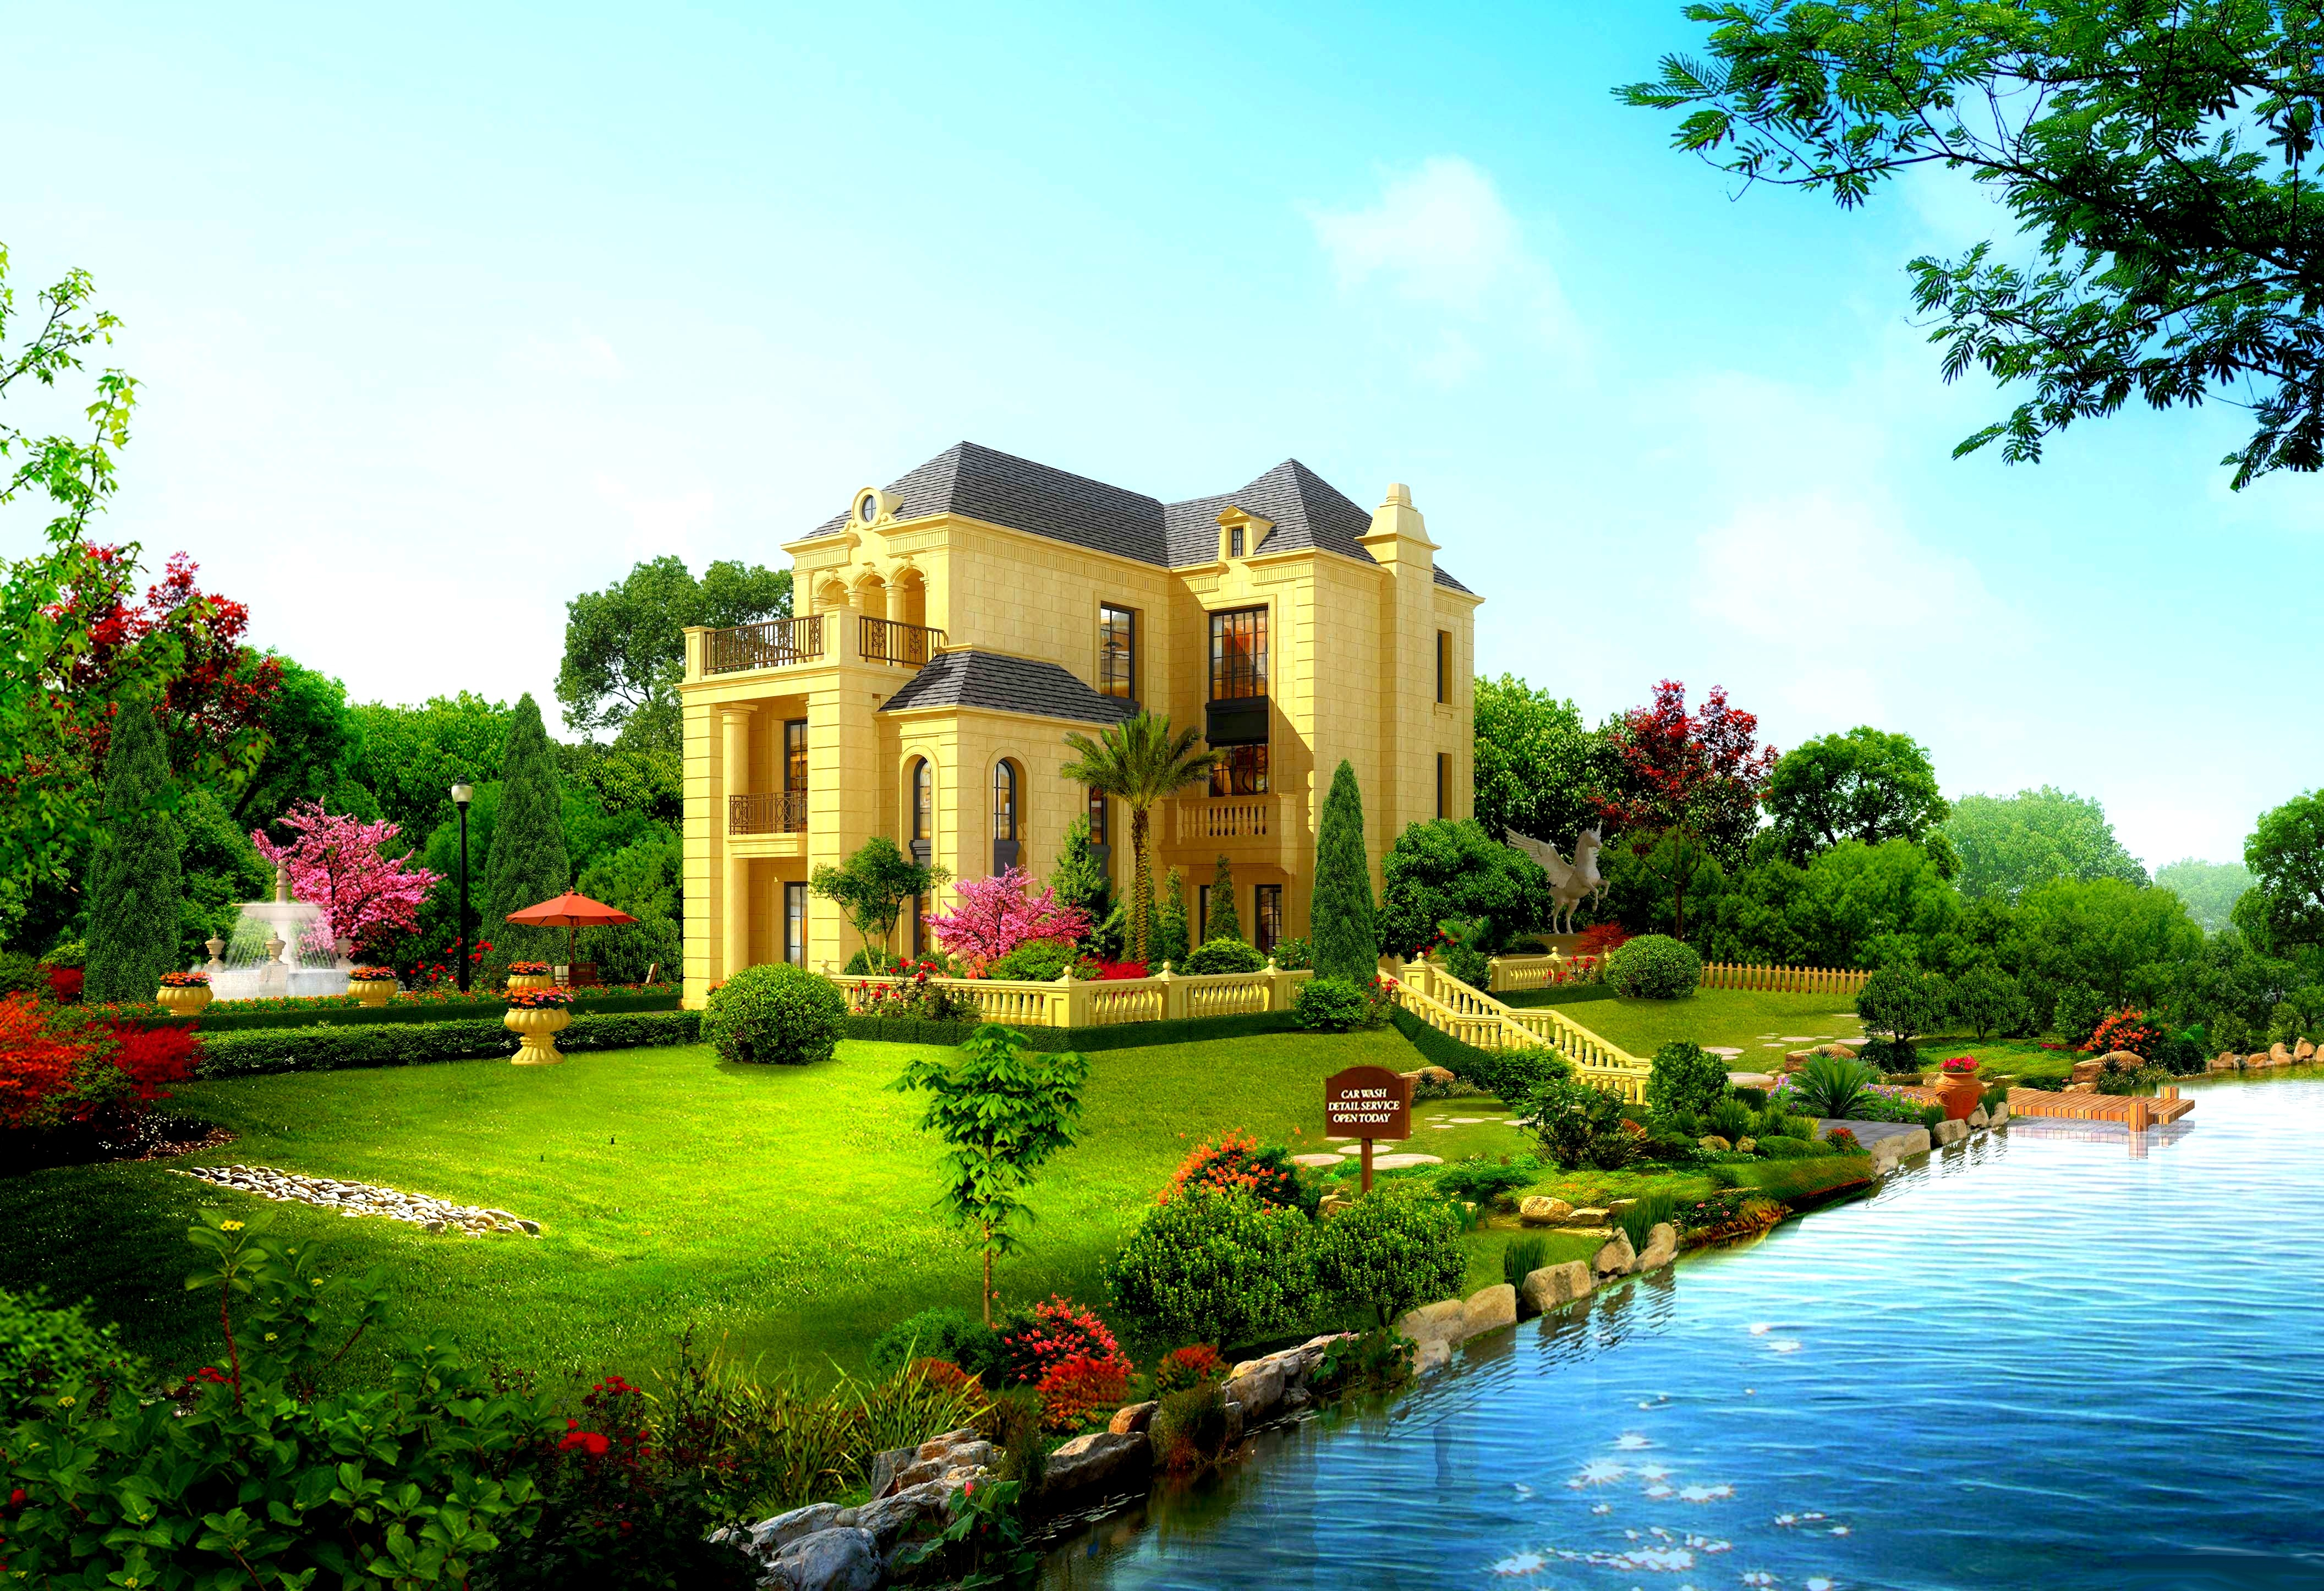 Beautiful house wallpaper 10490 pc en for Wallpaper with houses on it